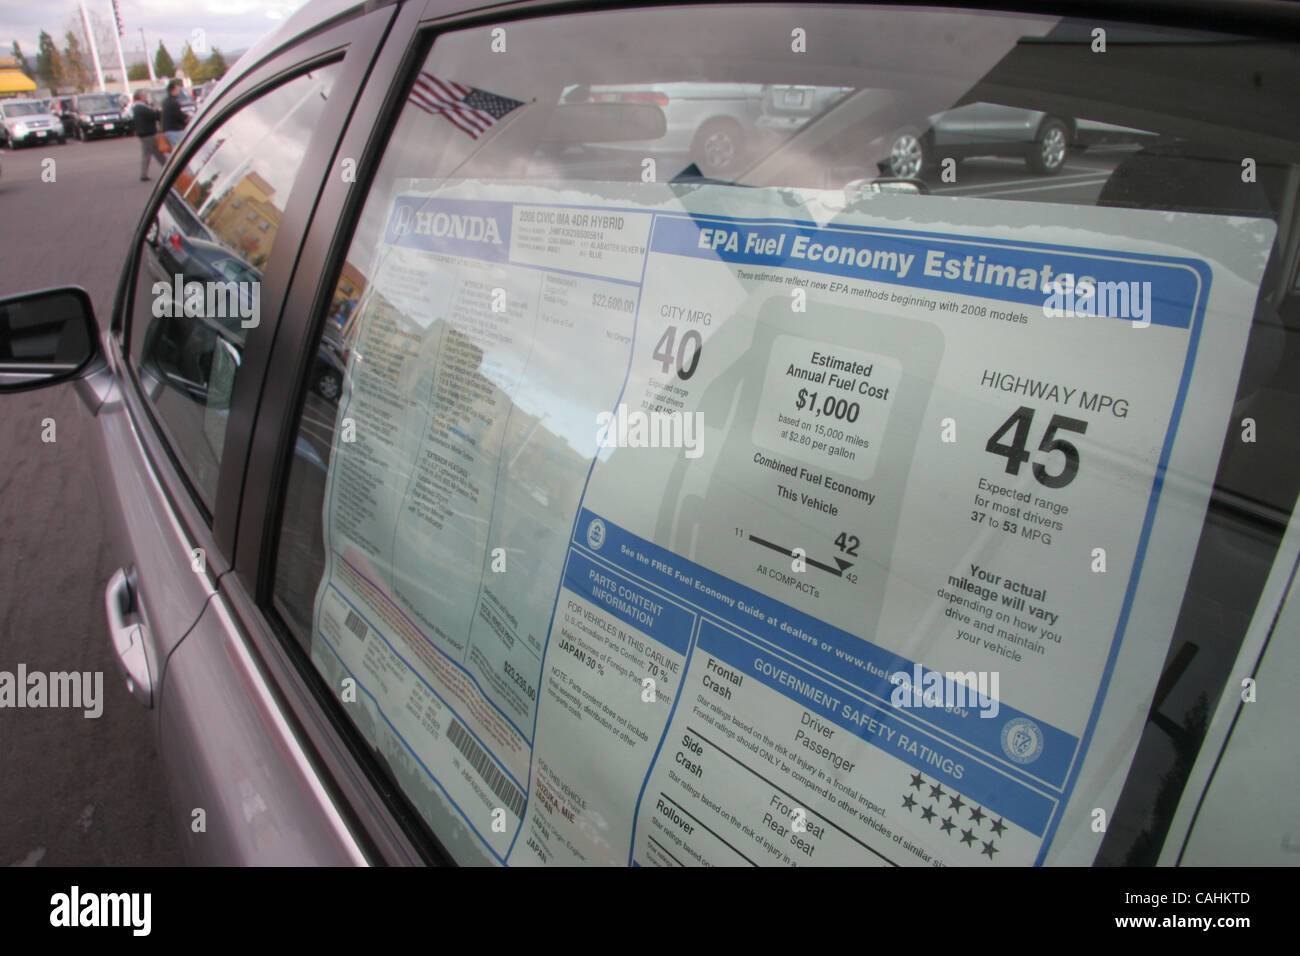 A 2008 Honda Civic hybrid sticker indicates a 45 MPG highway rating  on Friday, Dec. 7, 2007, in Pleasanton, Calif. - Stock Image